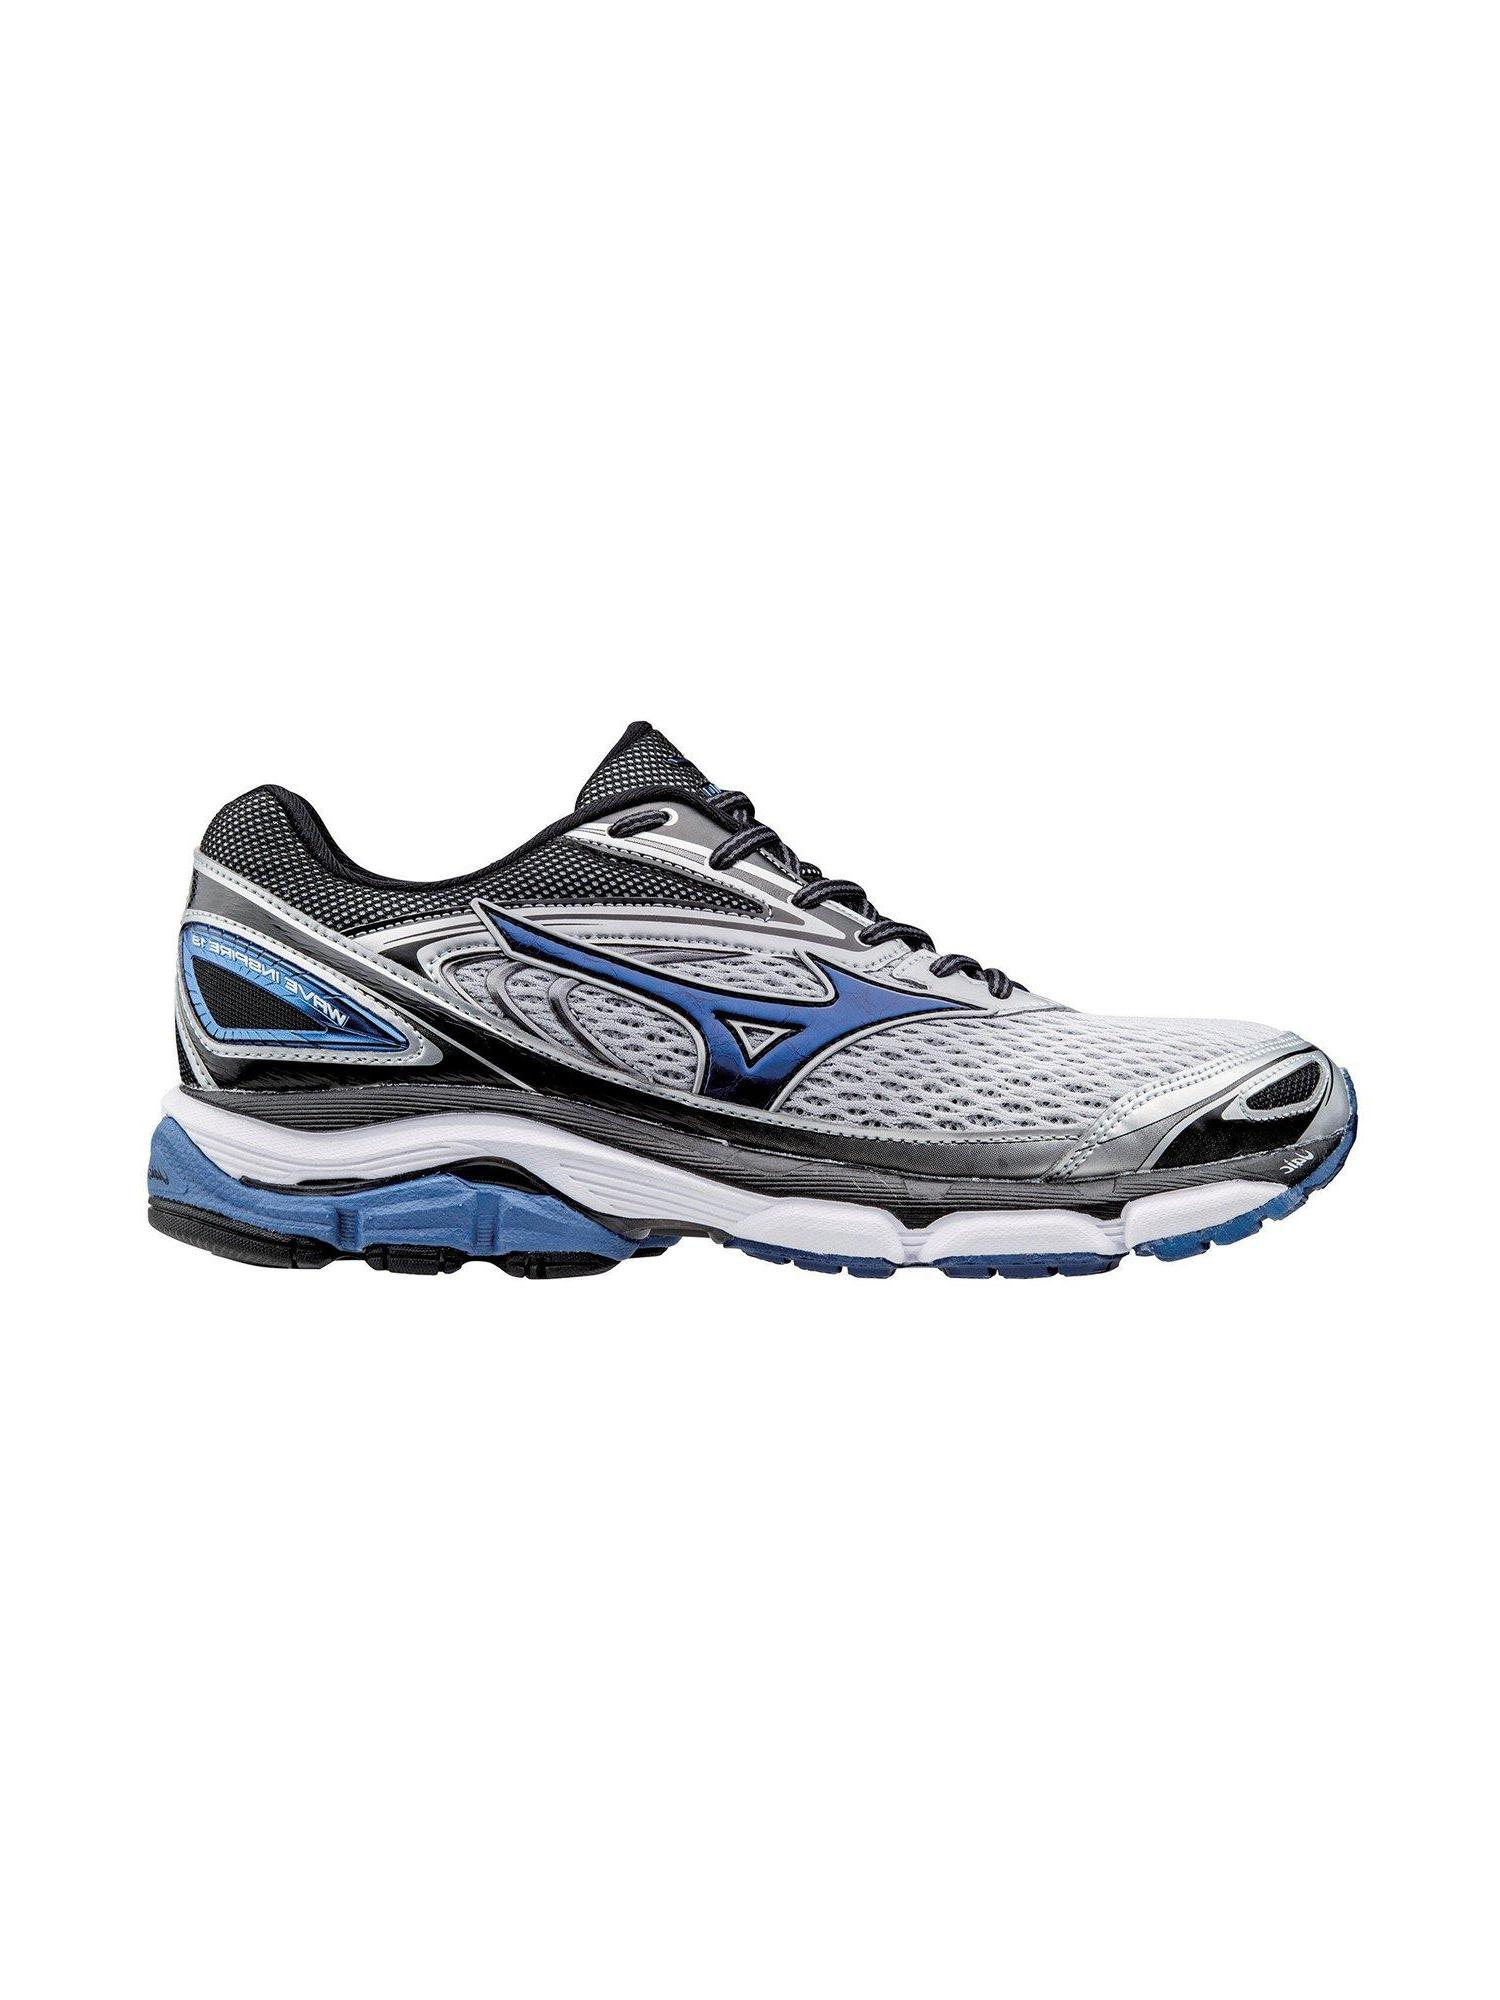 mens running shoes men s wave inspire